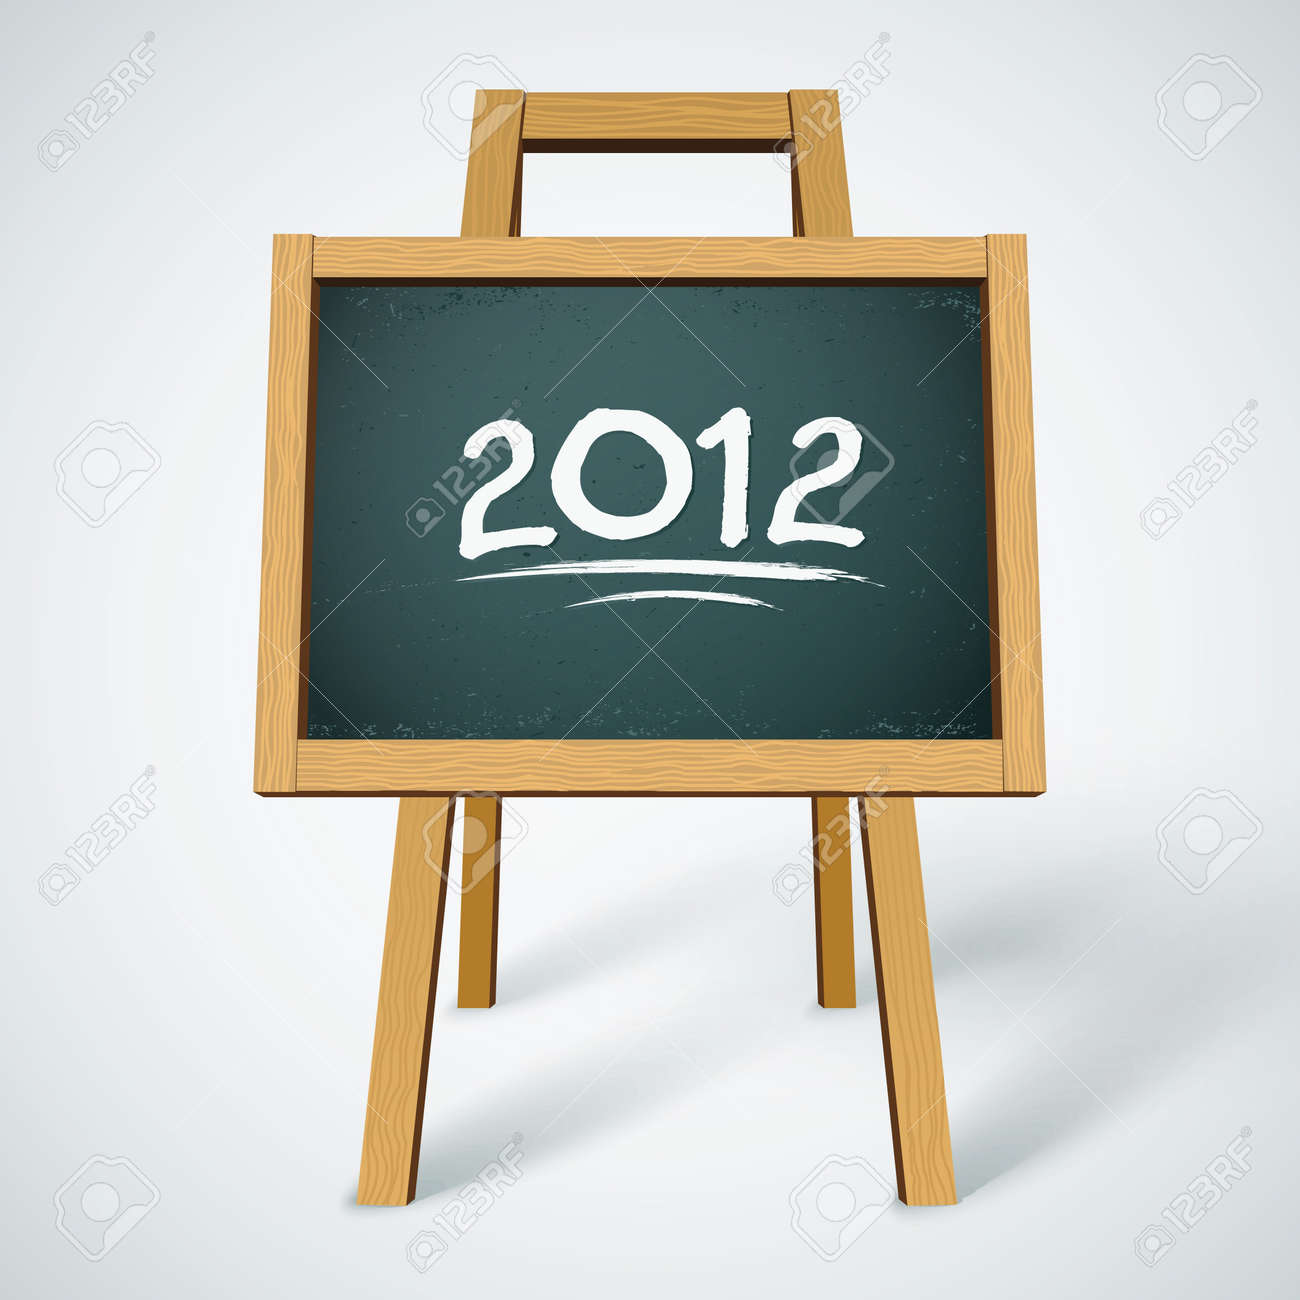 2012 on class chalkboard background Stock Vector - 10823674